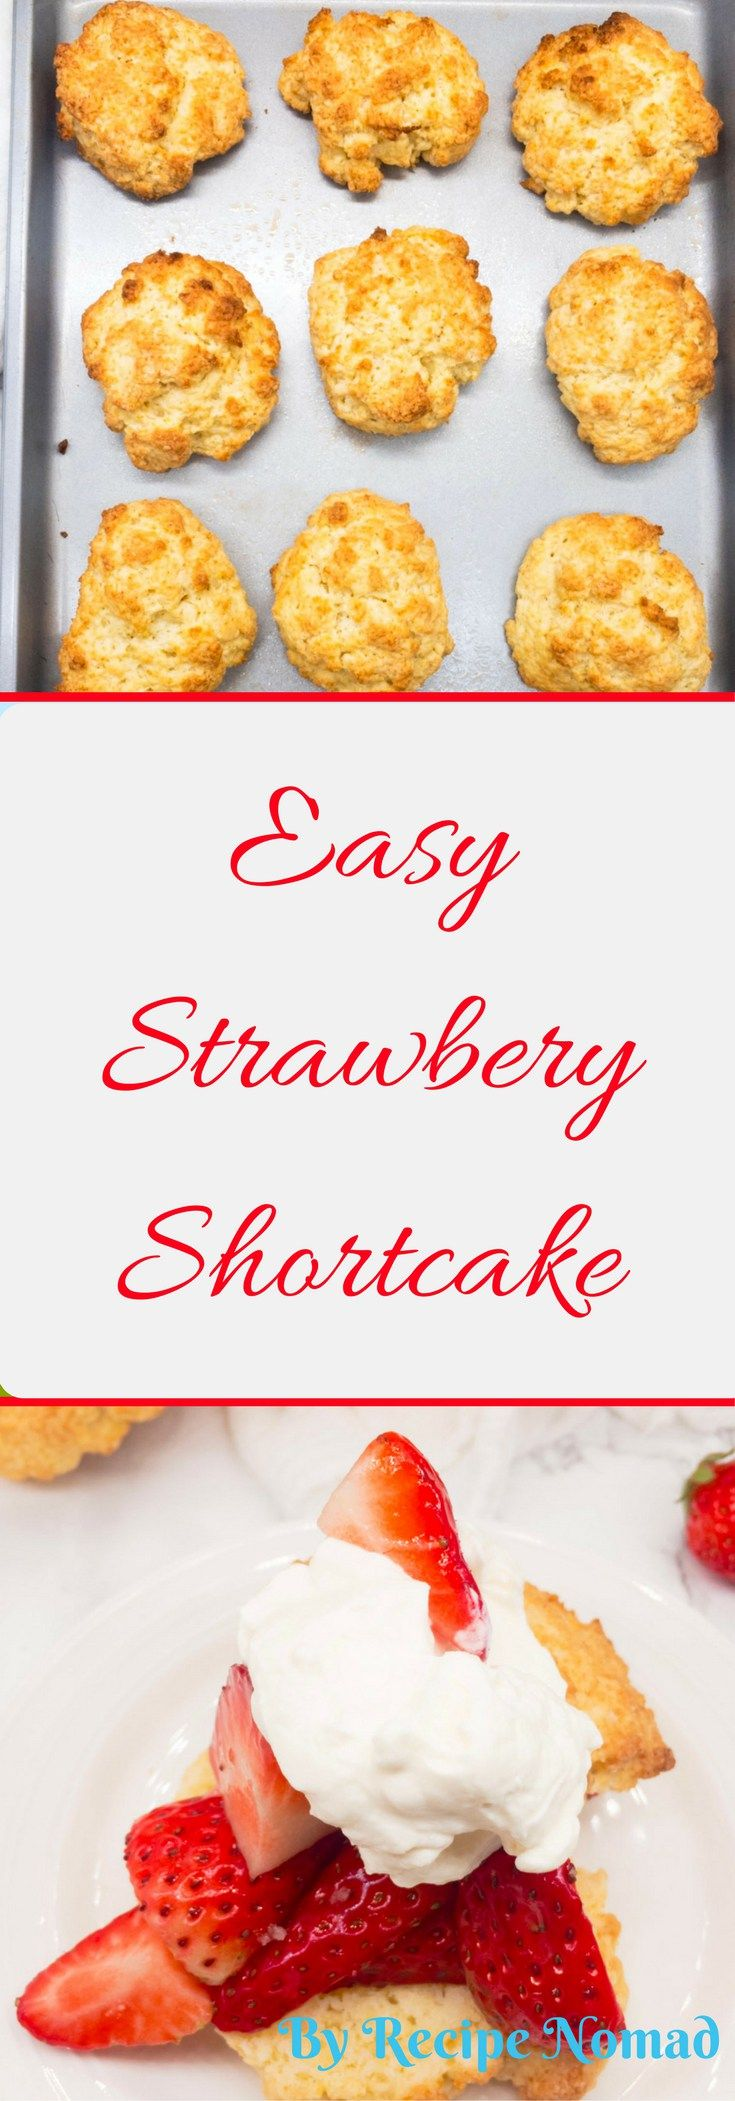 EASY Strawberry Shortcakes are absolutely delicious and so easy! Make the shortcakes in a food processor! Just add lots of strawberries and whipping cream!   http://www.recipenomad.com/easy-strawberry-shortcakes/   Easy Strawberry Shortcakes   Recipe Nomad